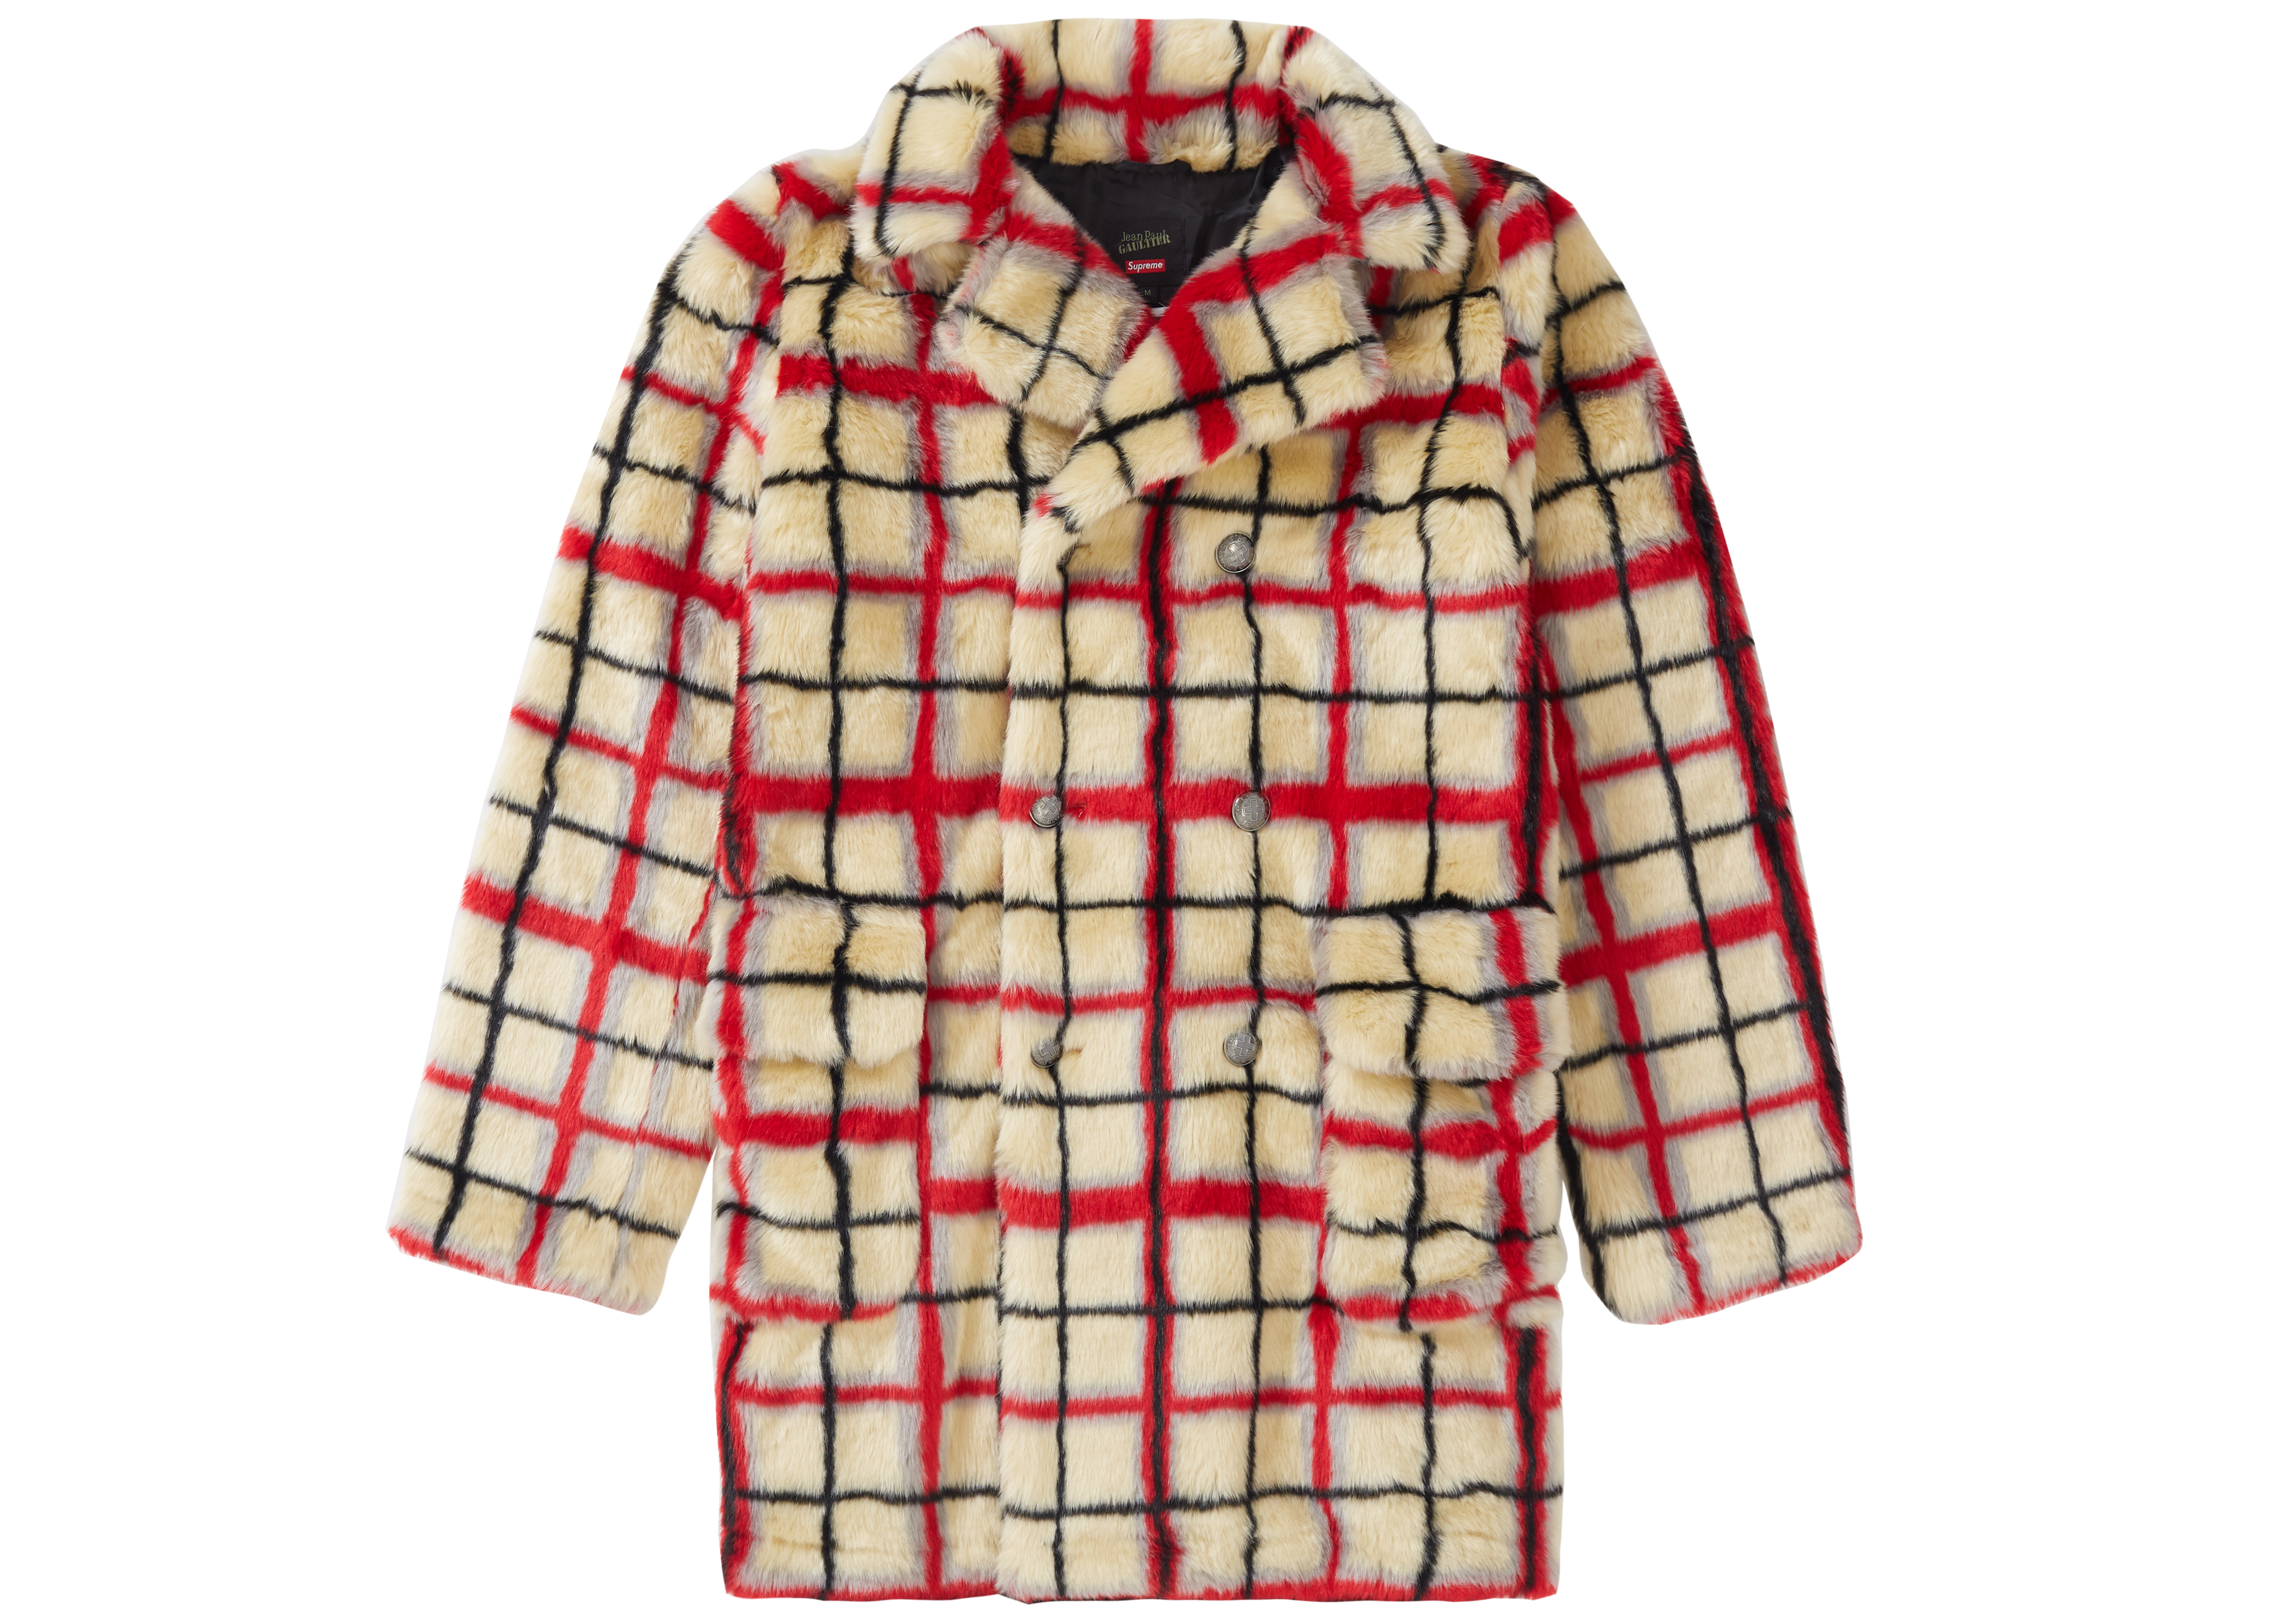 Paul Jean Breasted Coat Supreme Offwhite Gaultier Fur Double Faux Plaid hQtsrCd